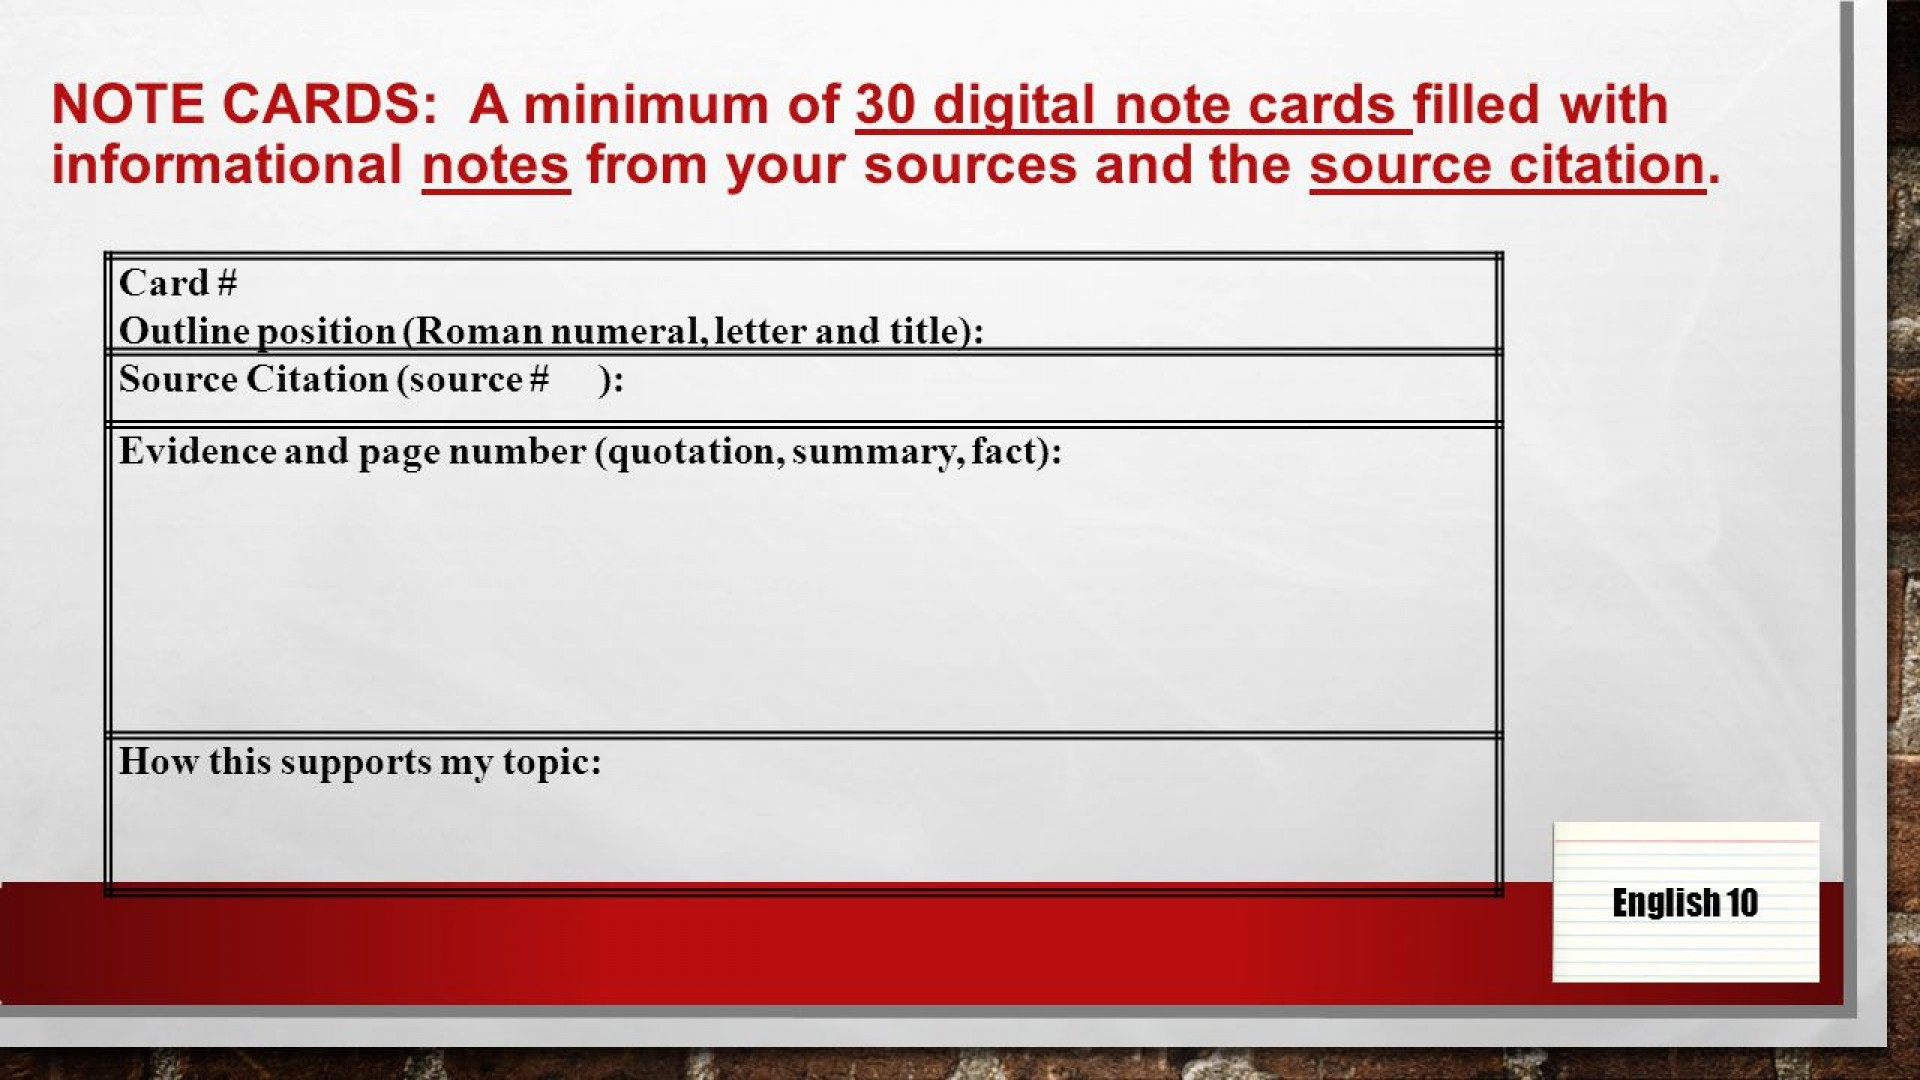 002 Note Cards For Researchs Slide 4 Excellent Research Papers Template Paper Notecards Mla Format 1920